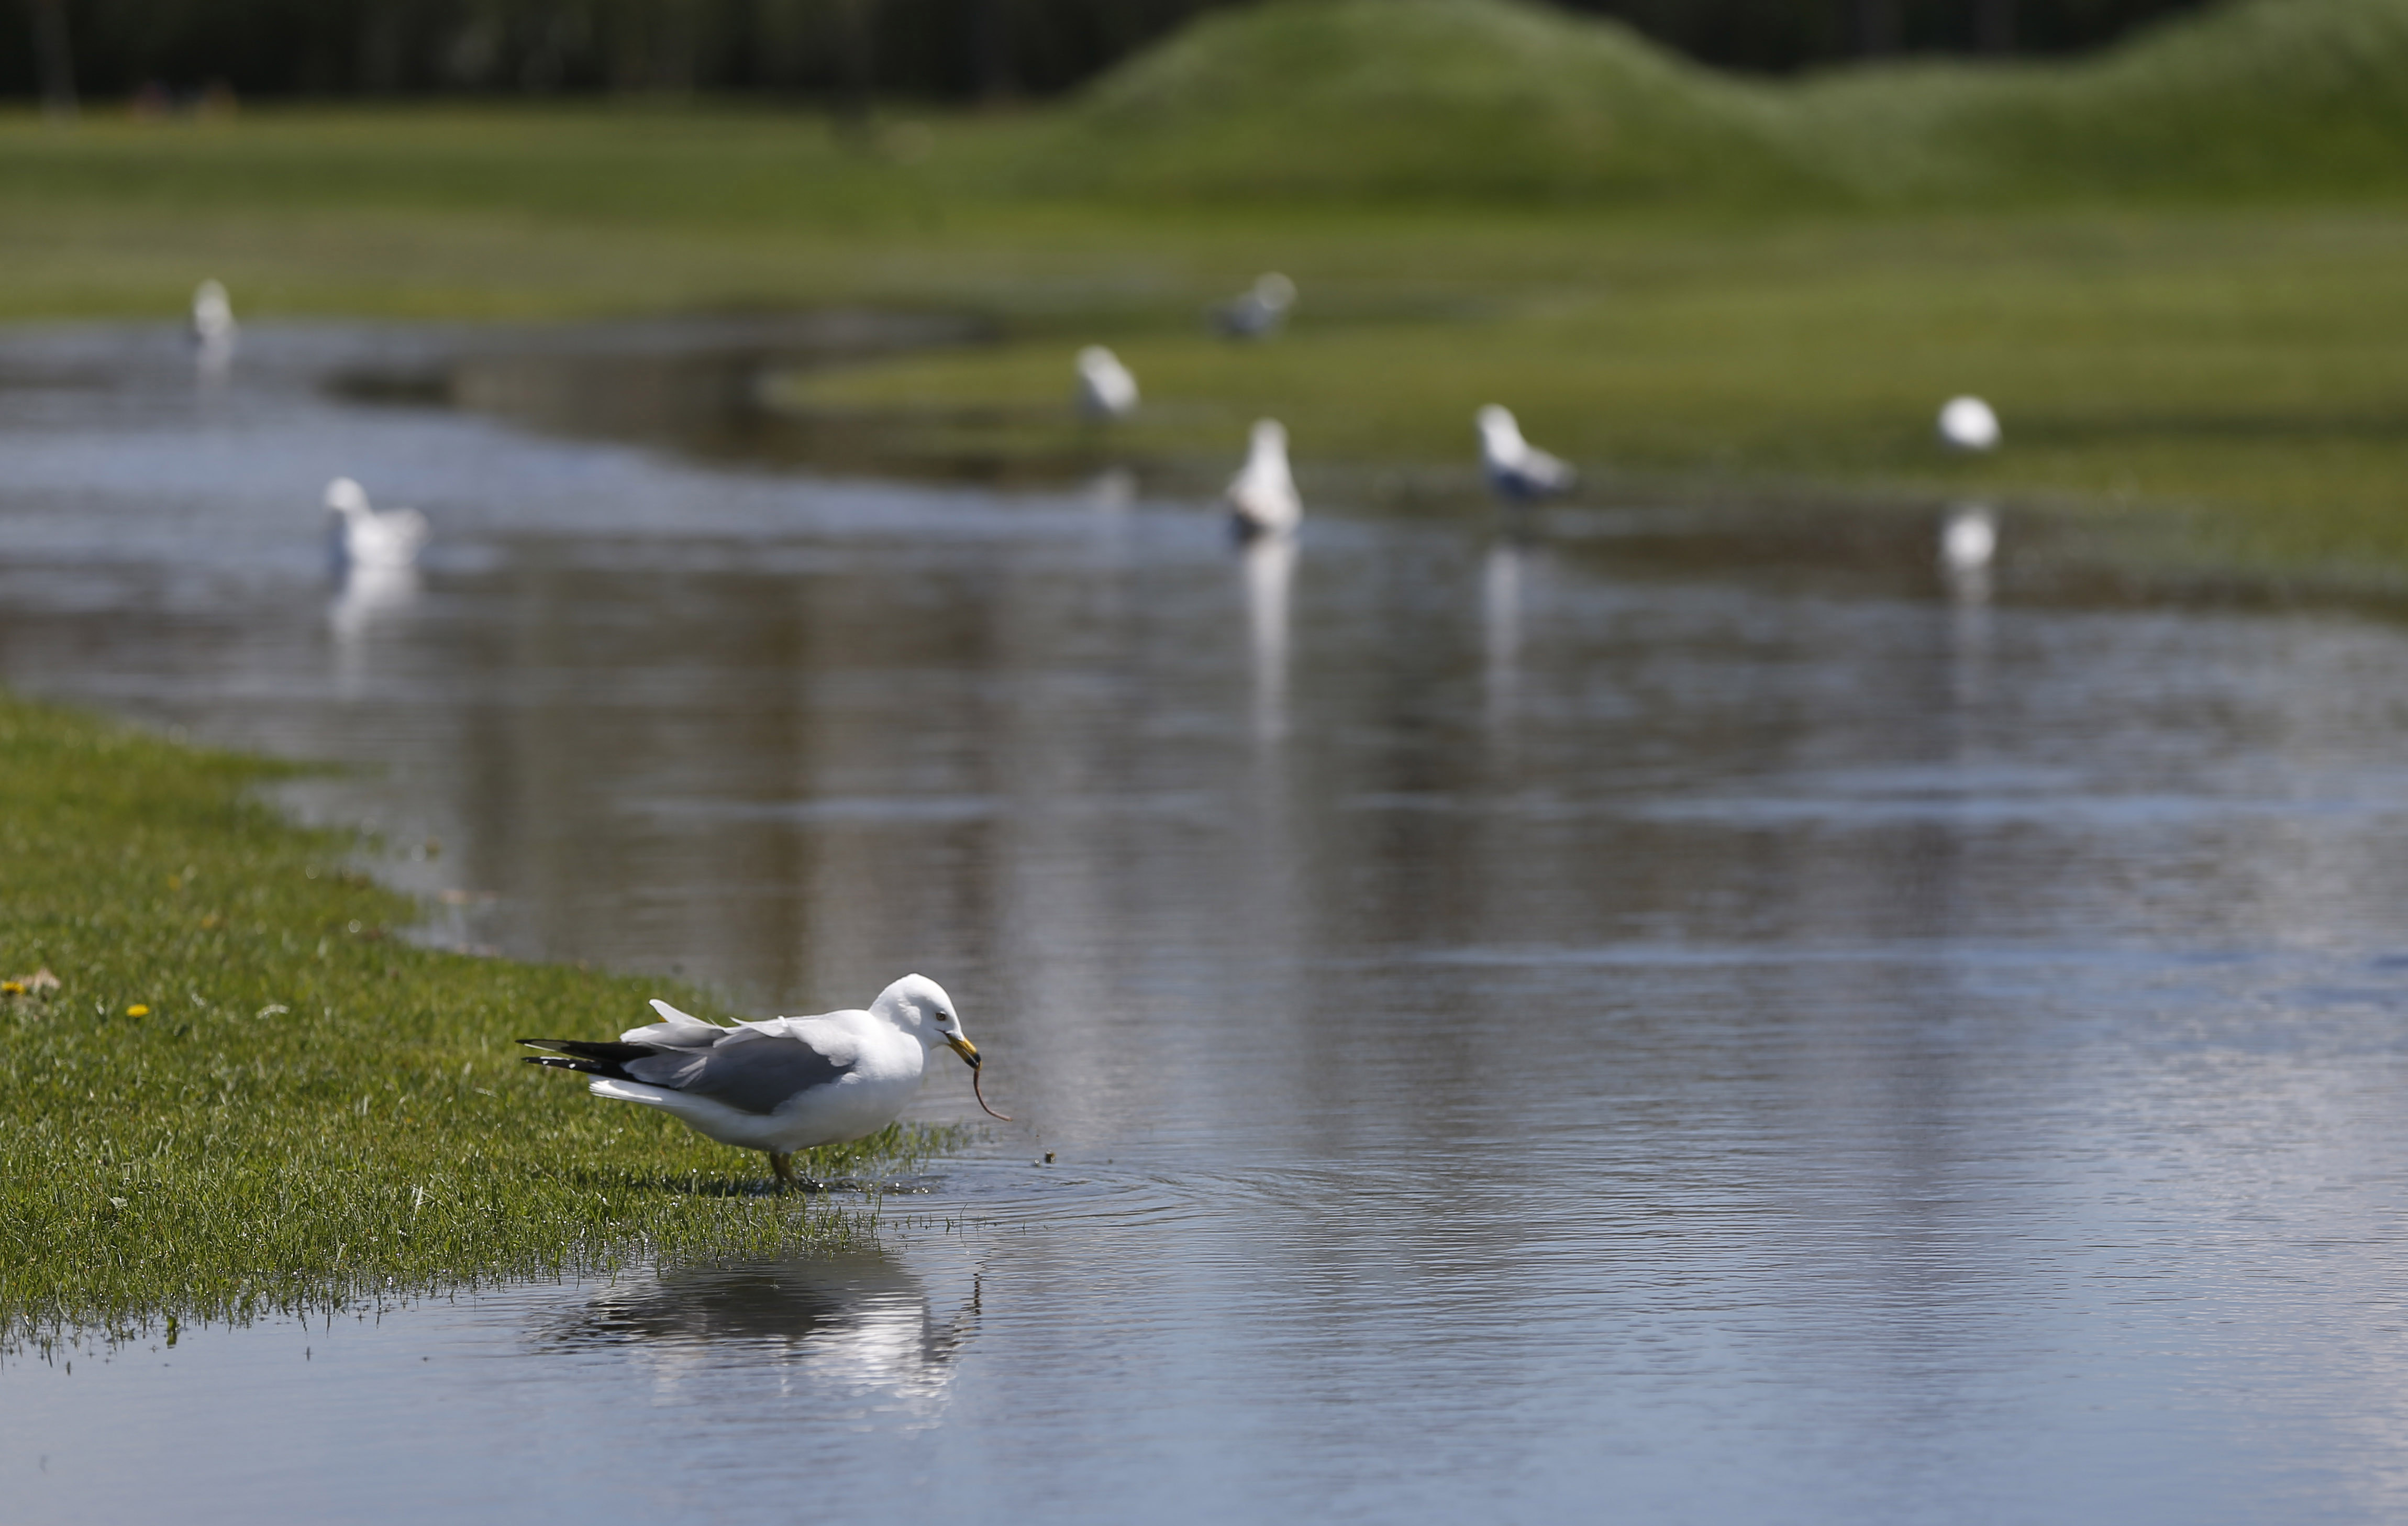 Flooding on the Grover Cleveland Golf Course in May. Cash went missing from the golf course last year. (Sharon Cantillon/Buffalo News)